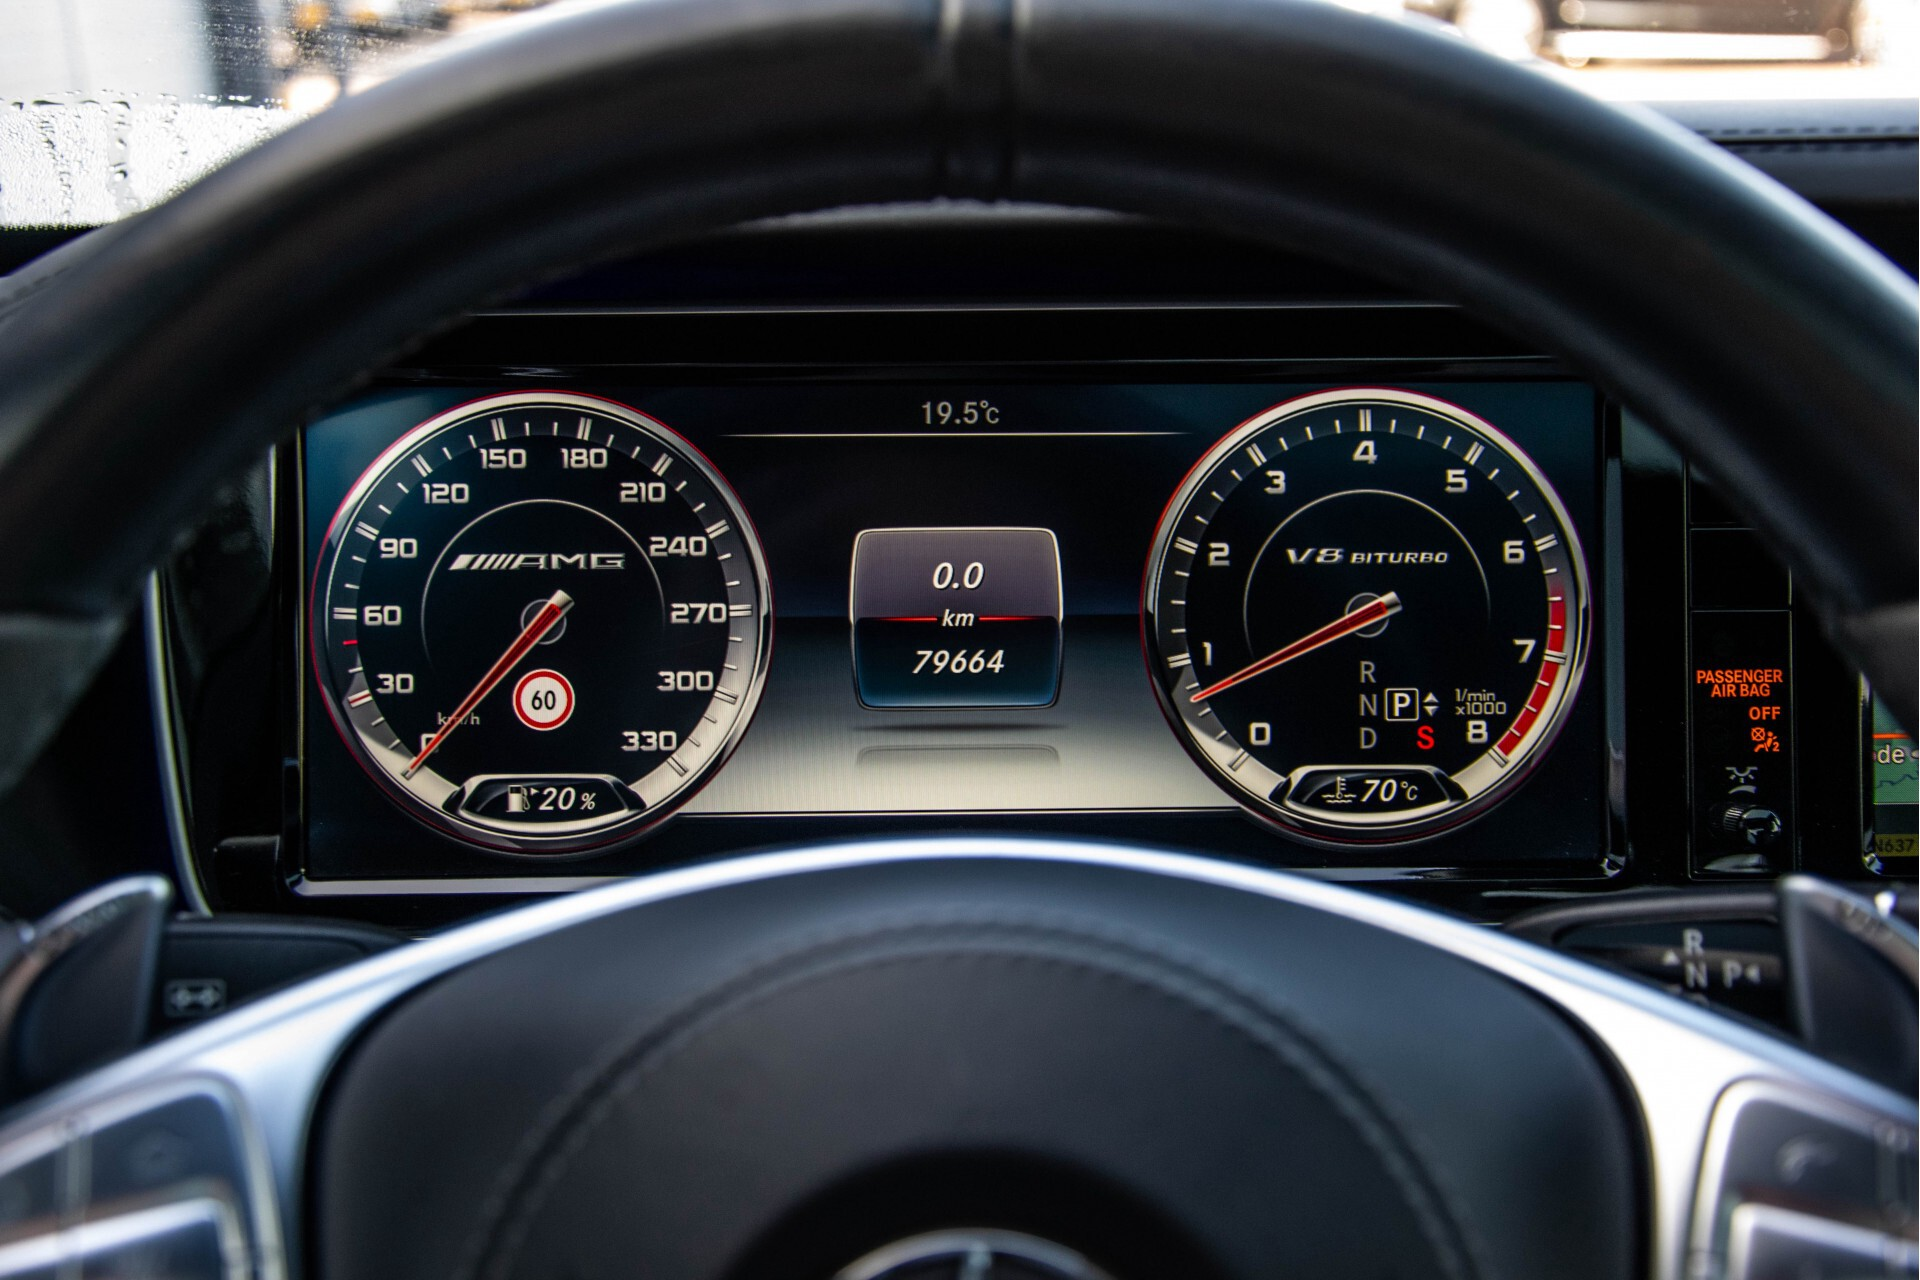 Mercedes-Benz S-Klasse 63 AMG Exclusive/Burmester High-End/Driverspack Aut7 Foto 12